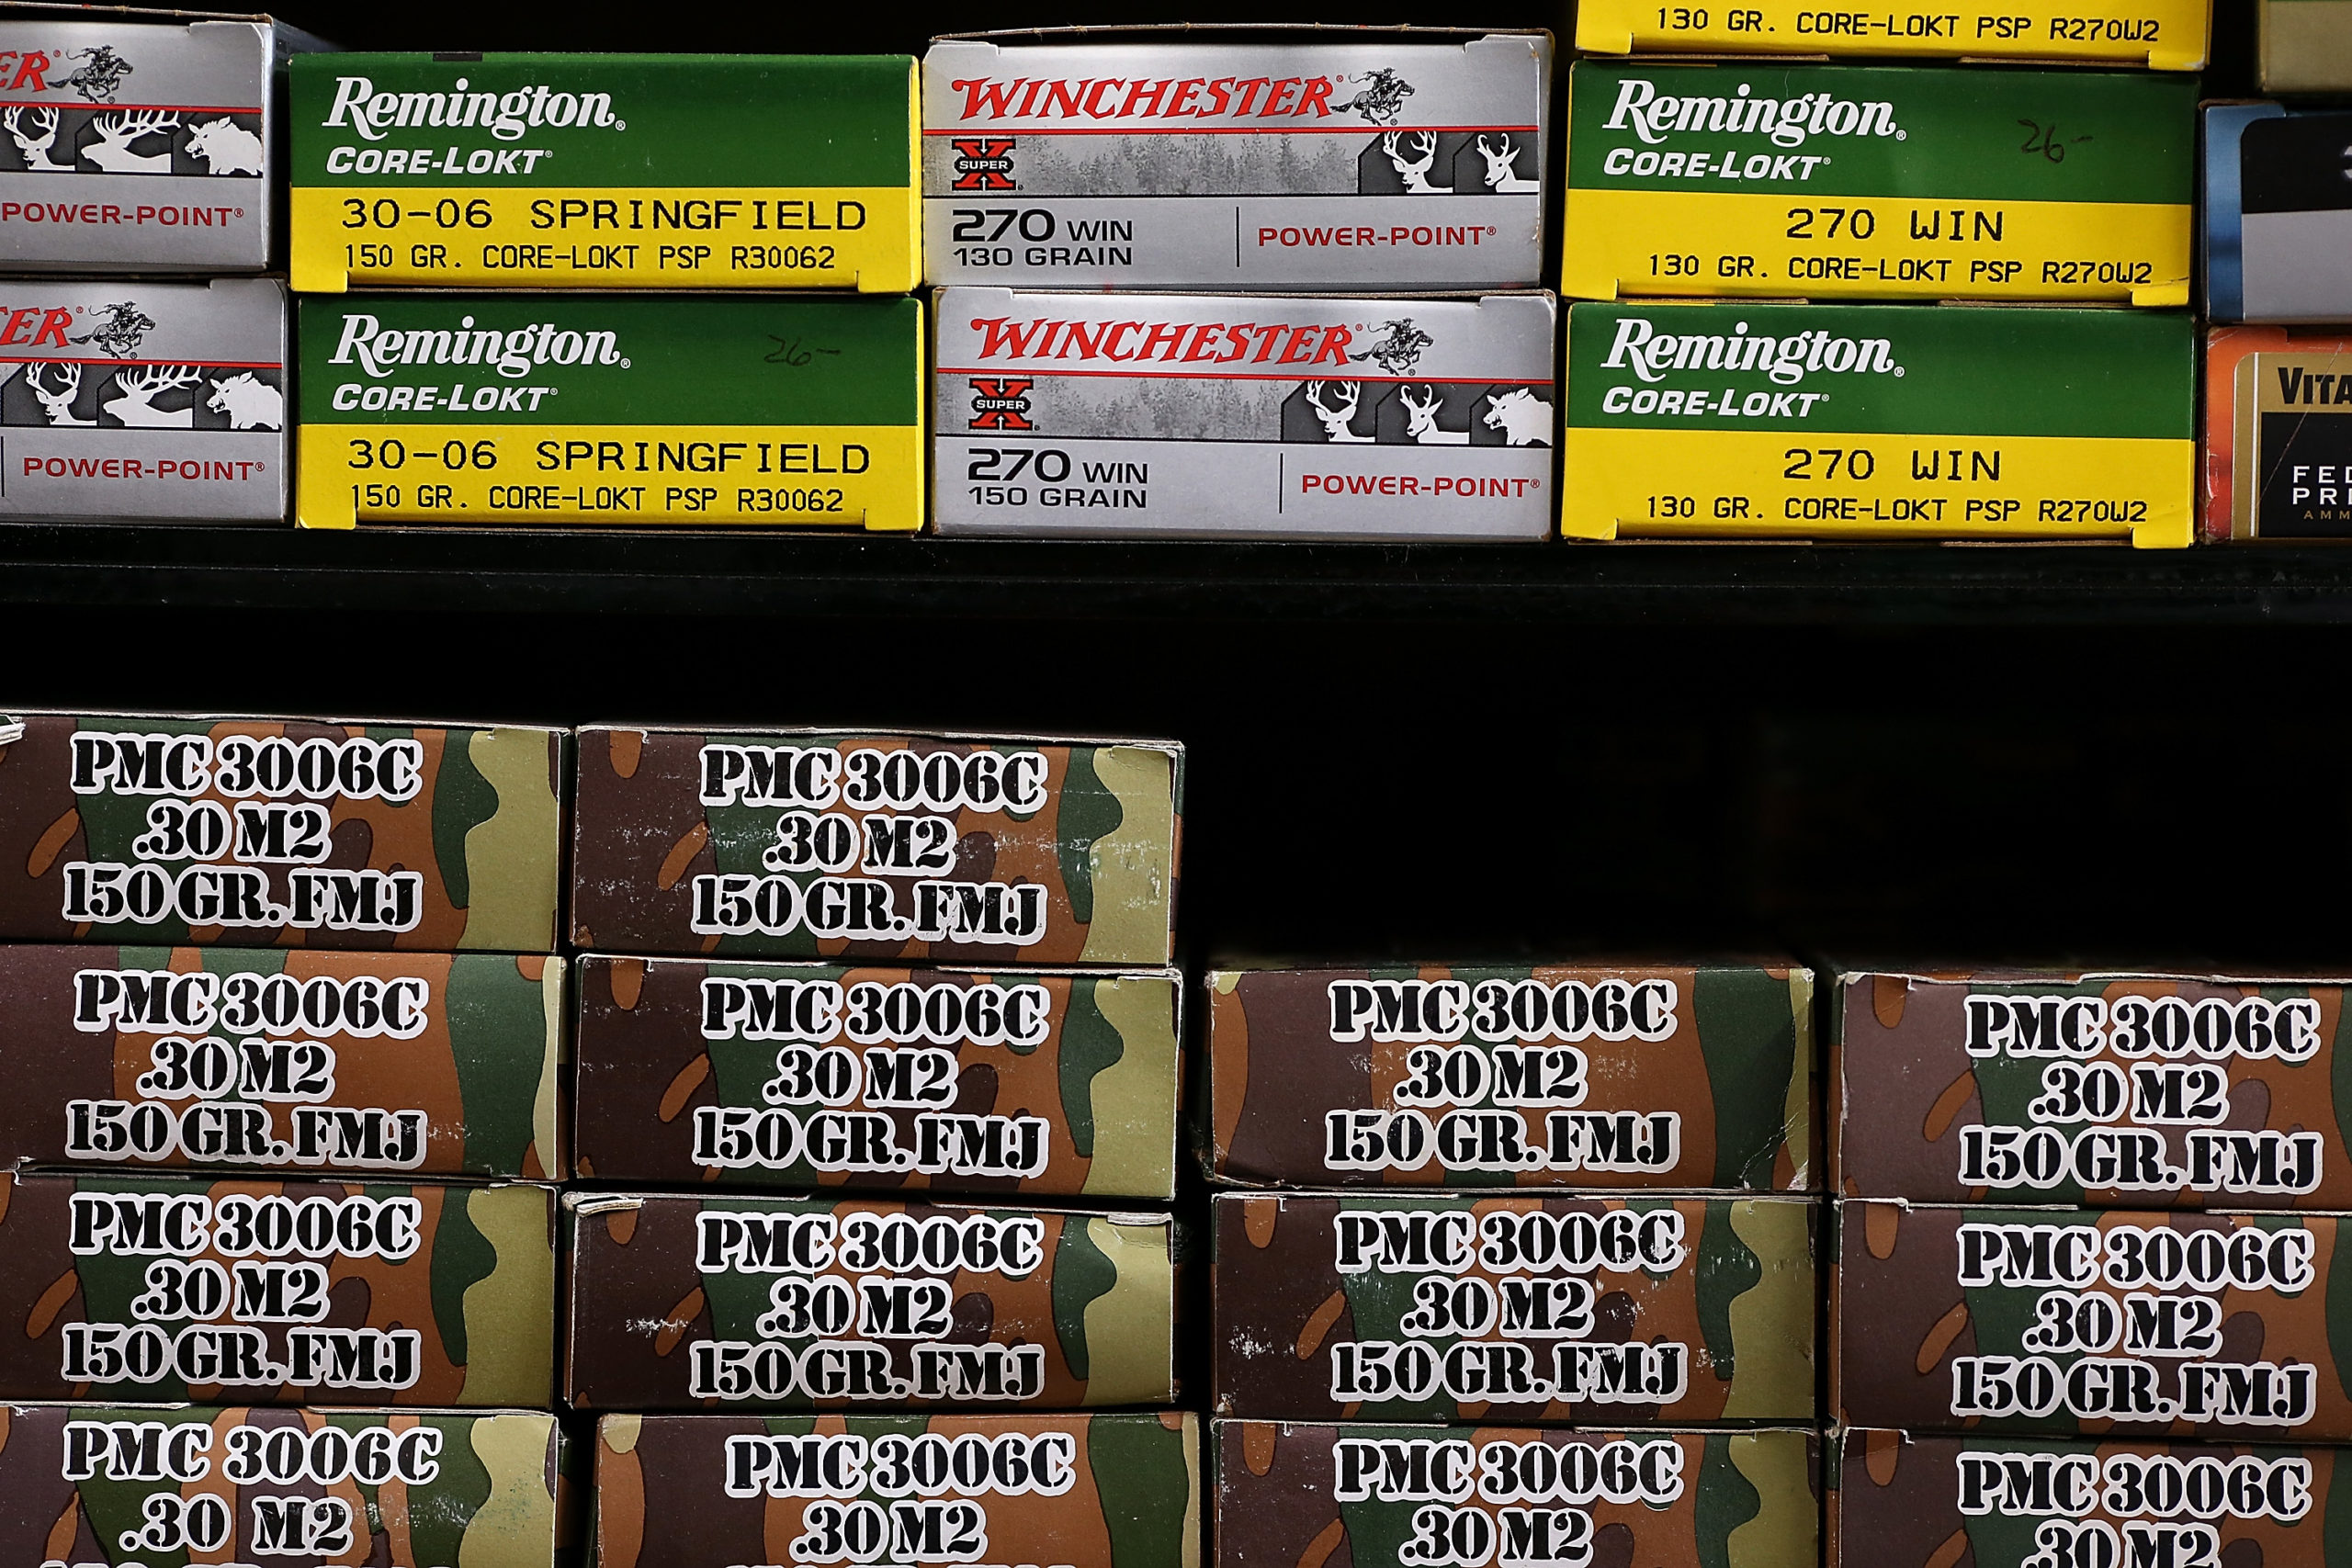 PETALUMA, CA - APRIL 02: Boxes of ammunition sit on the shelf at Sportsmans Arms on April 2, 2013 in Petaluma, California. In the wake of the Newtown, Connecticut school massacare, California State lawmakers are introducing several bills that propose taxing and regulating sales of ammunition. Another bill is aimed to require a background check and annual permit fee to purchase any ammunition. (Photo by Justin Sullivan/Getty Images)